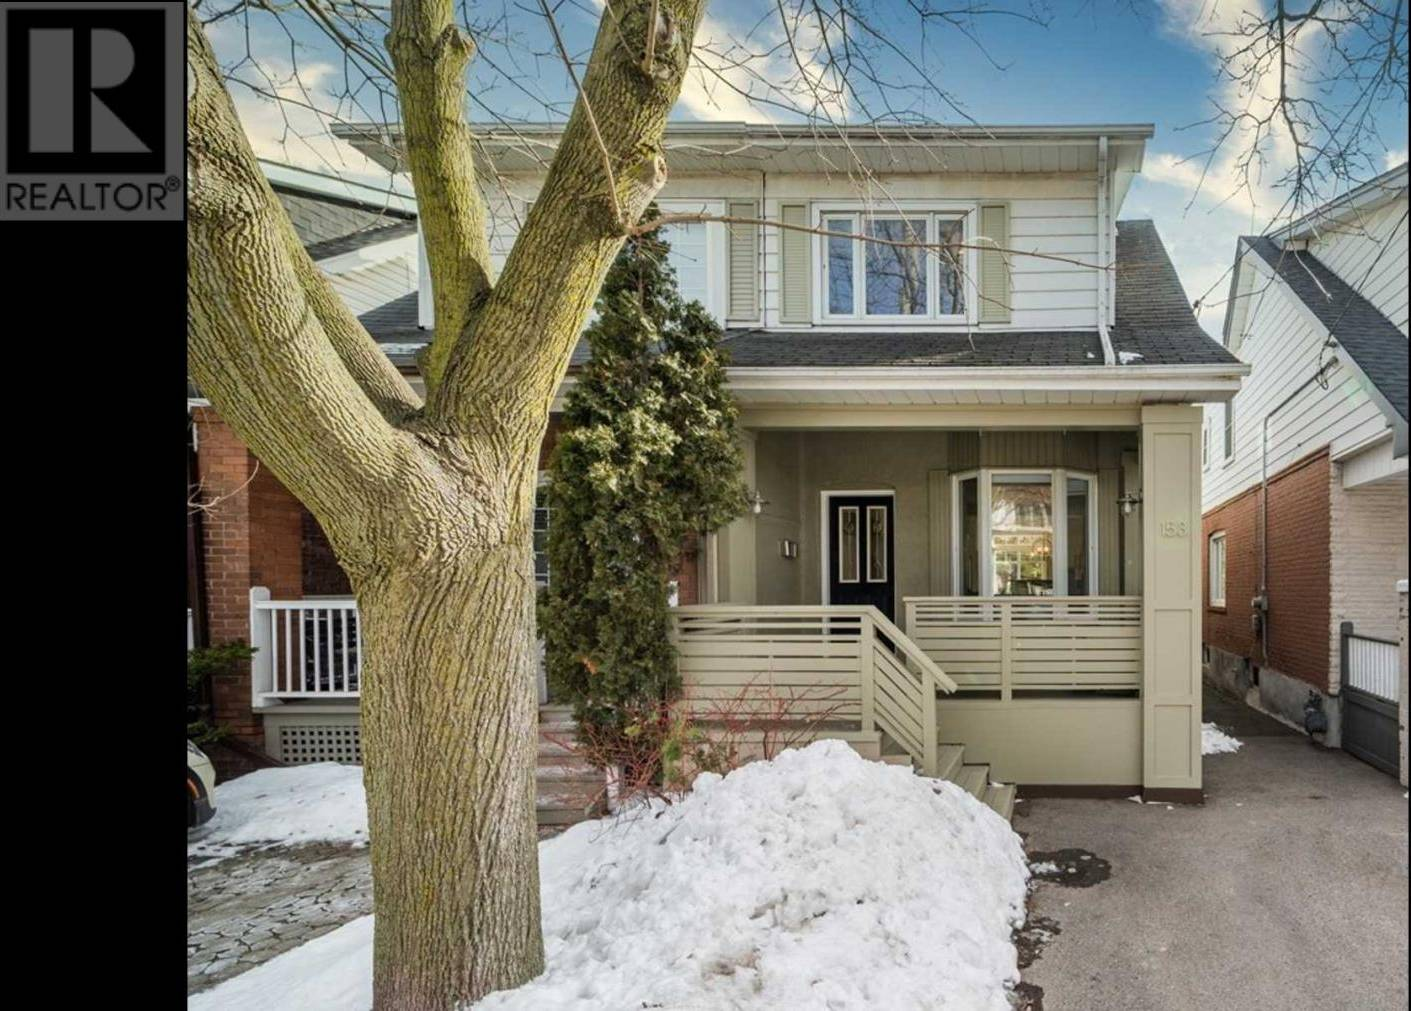 House for sale at 153 Swanwick Ave Toronto Ontario - MLS: E4701689